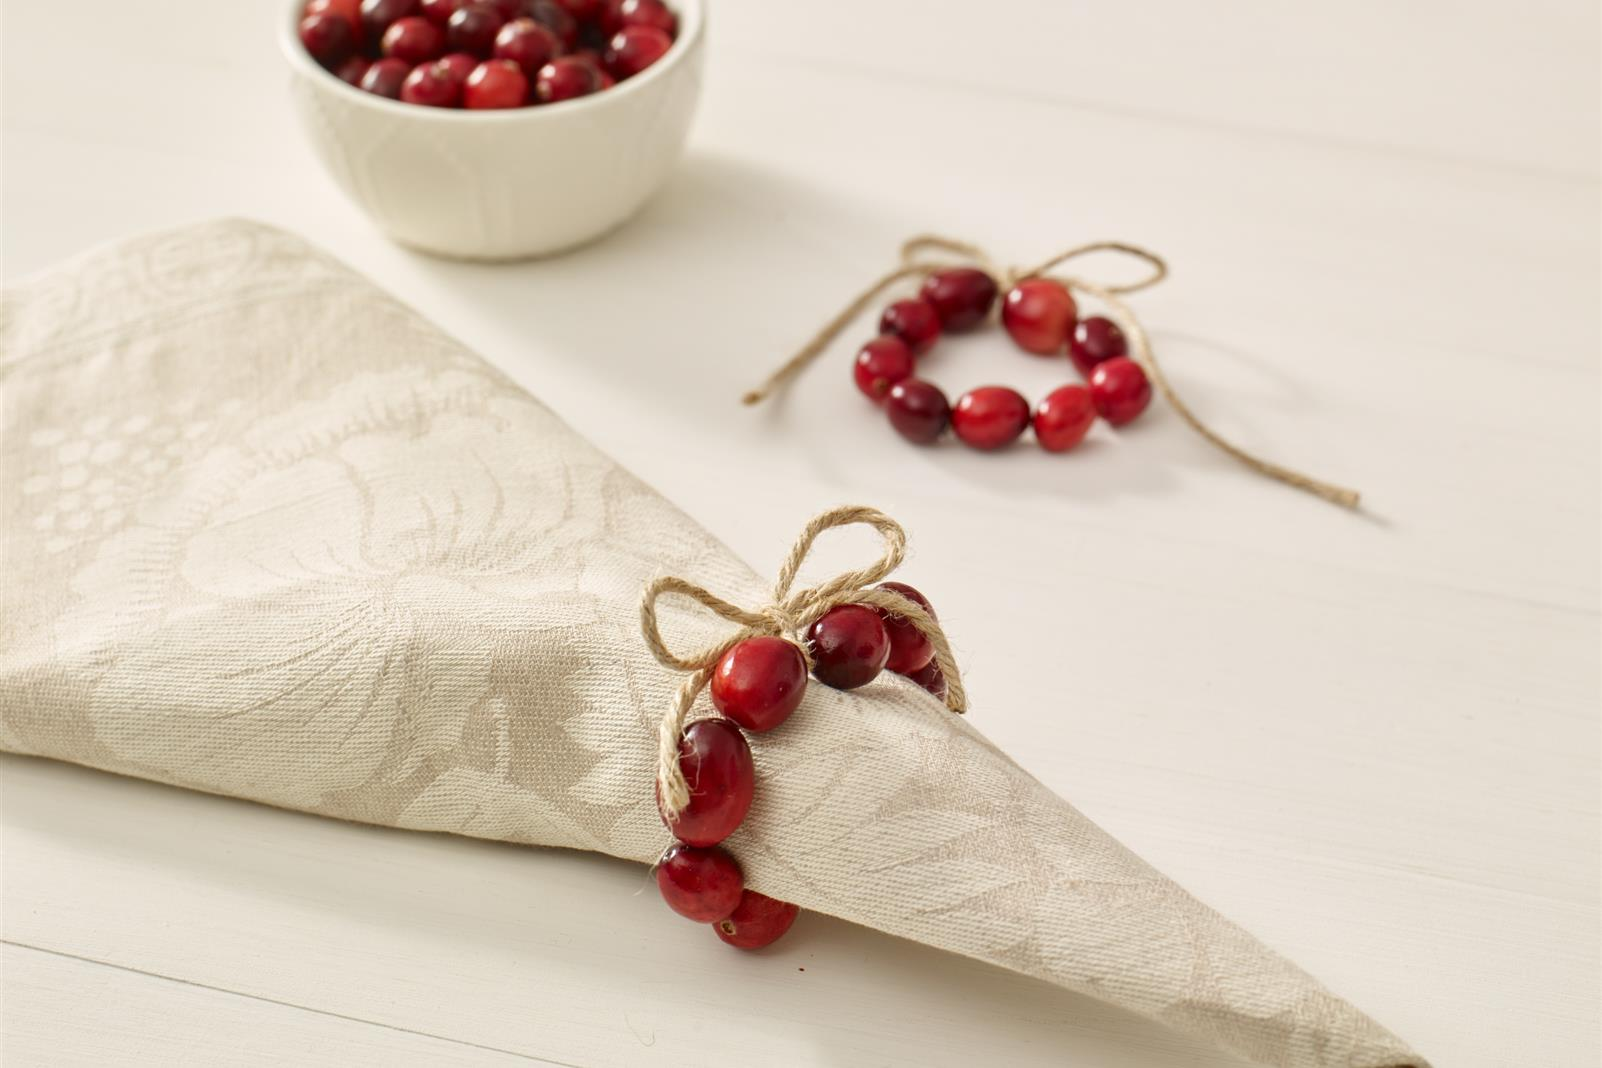 Cranberry Napkin Ring